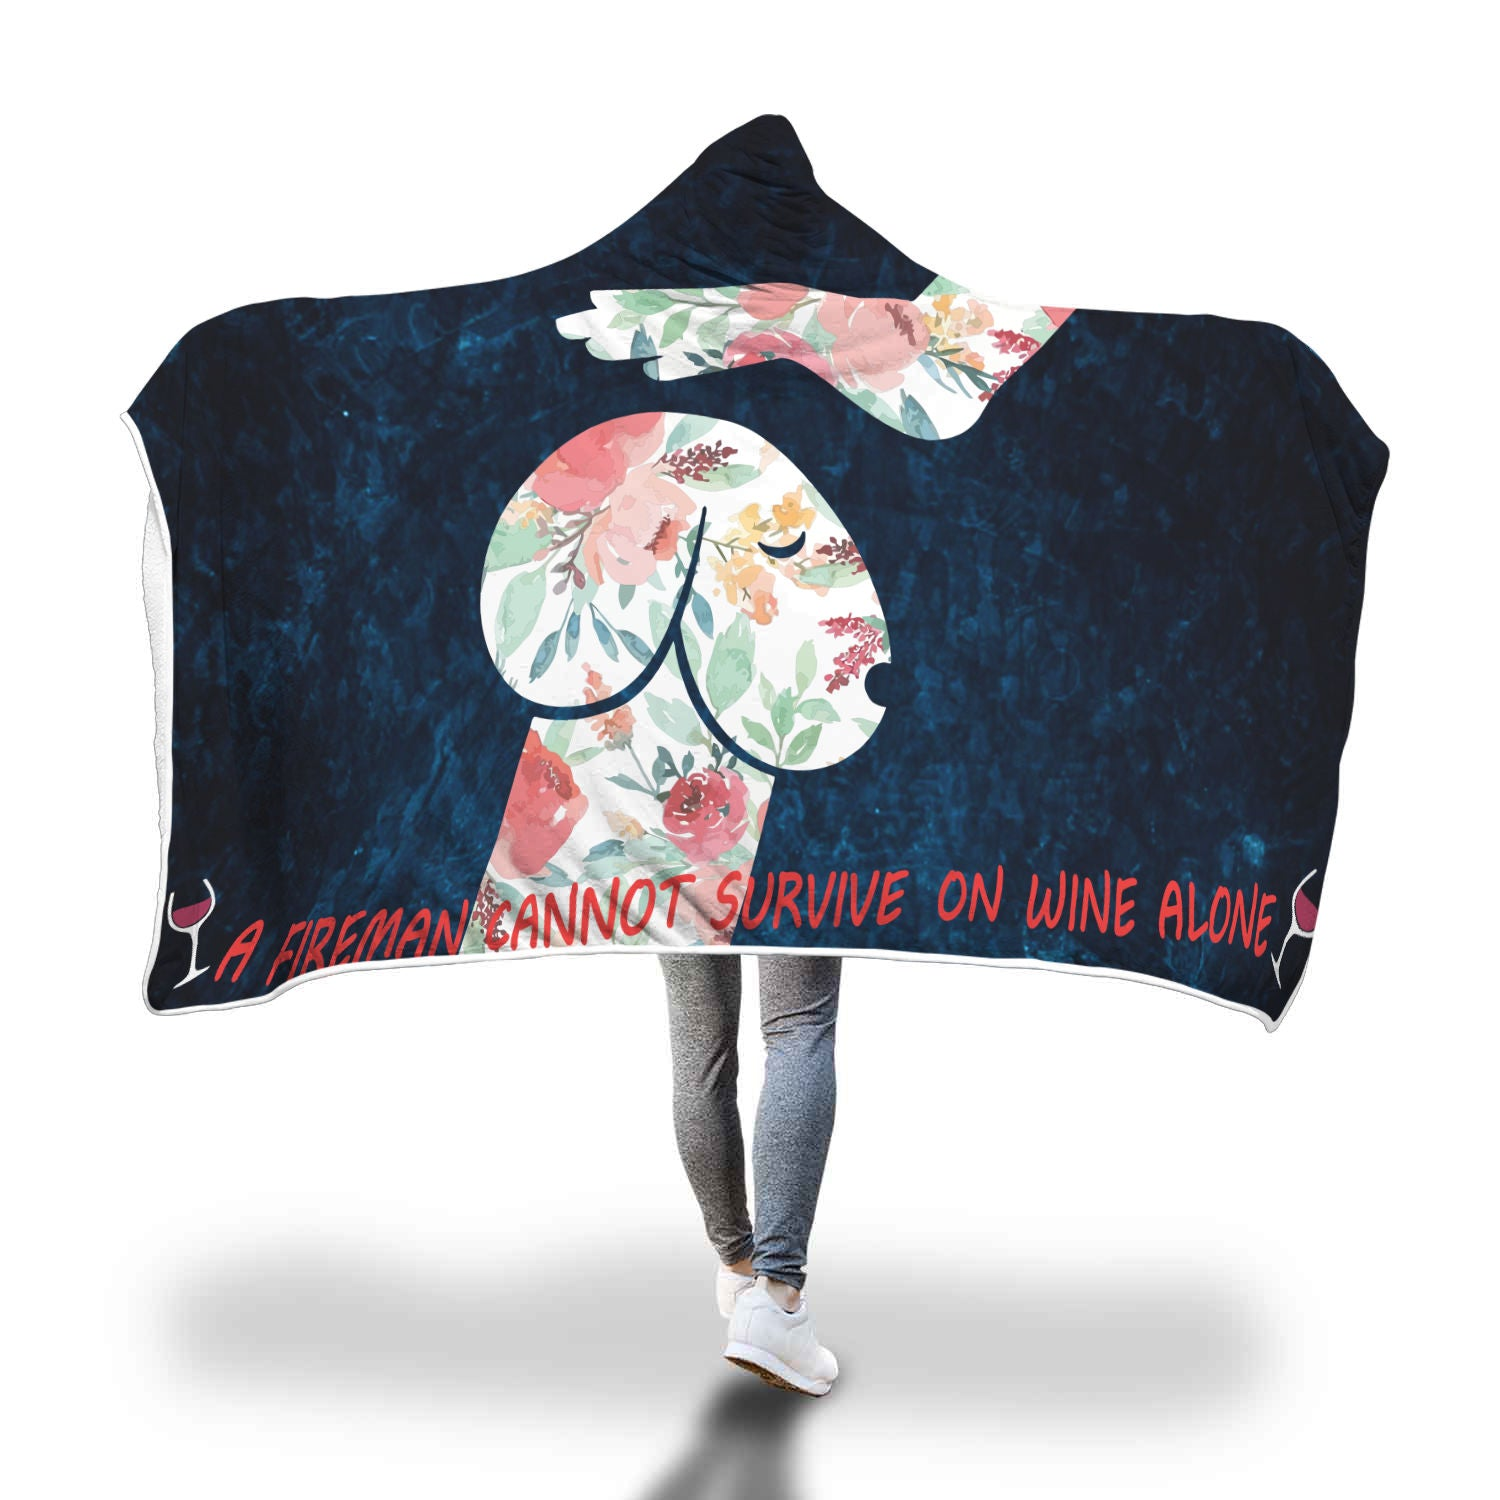 VIRA COZY HOODED BLANKET FOR FIREFIGHTER cannot survive on wine alone